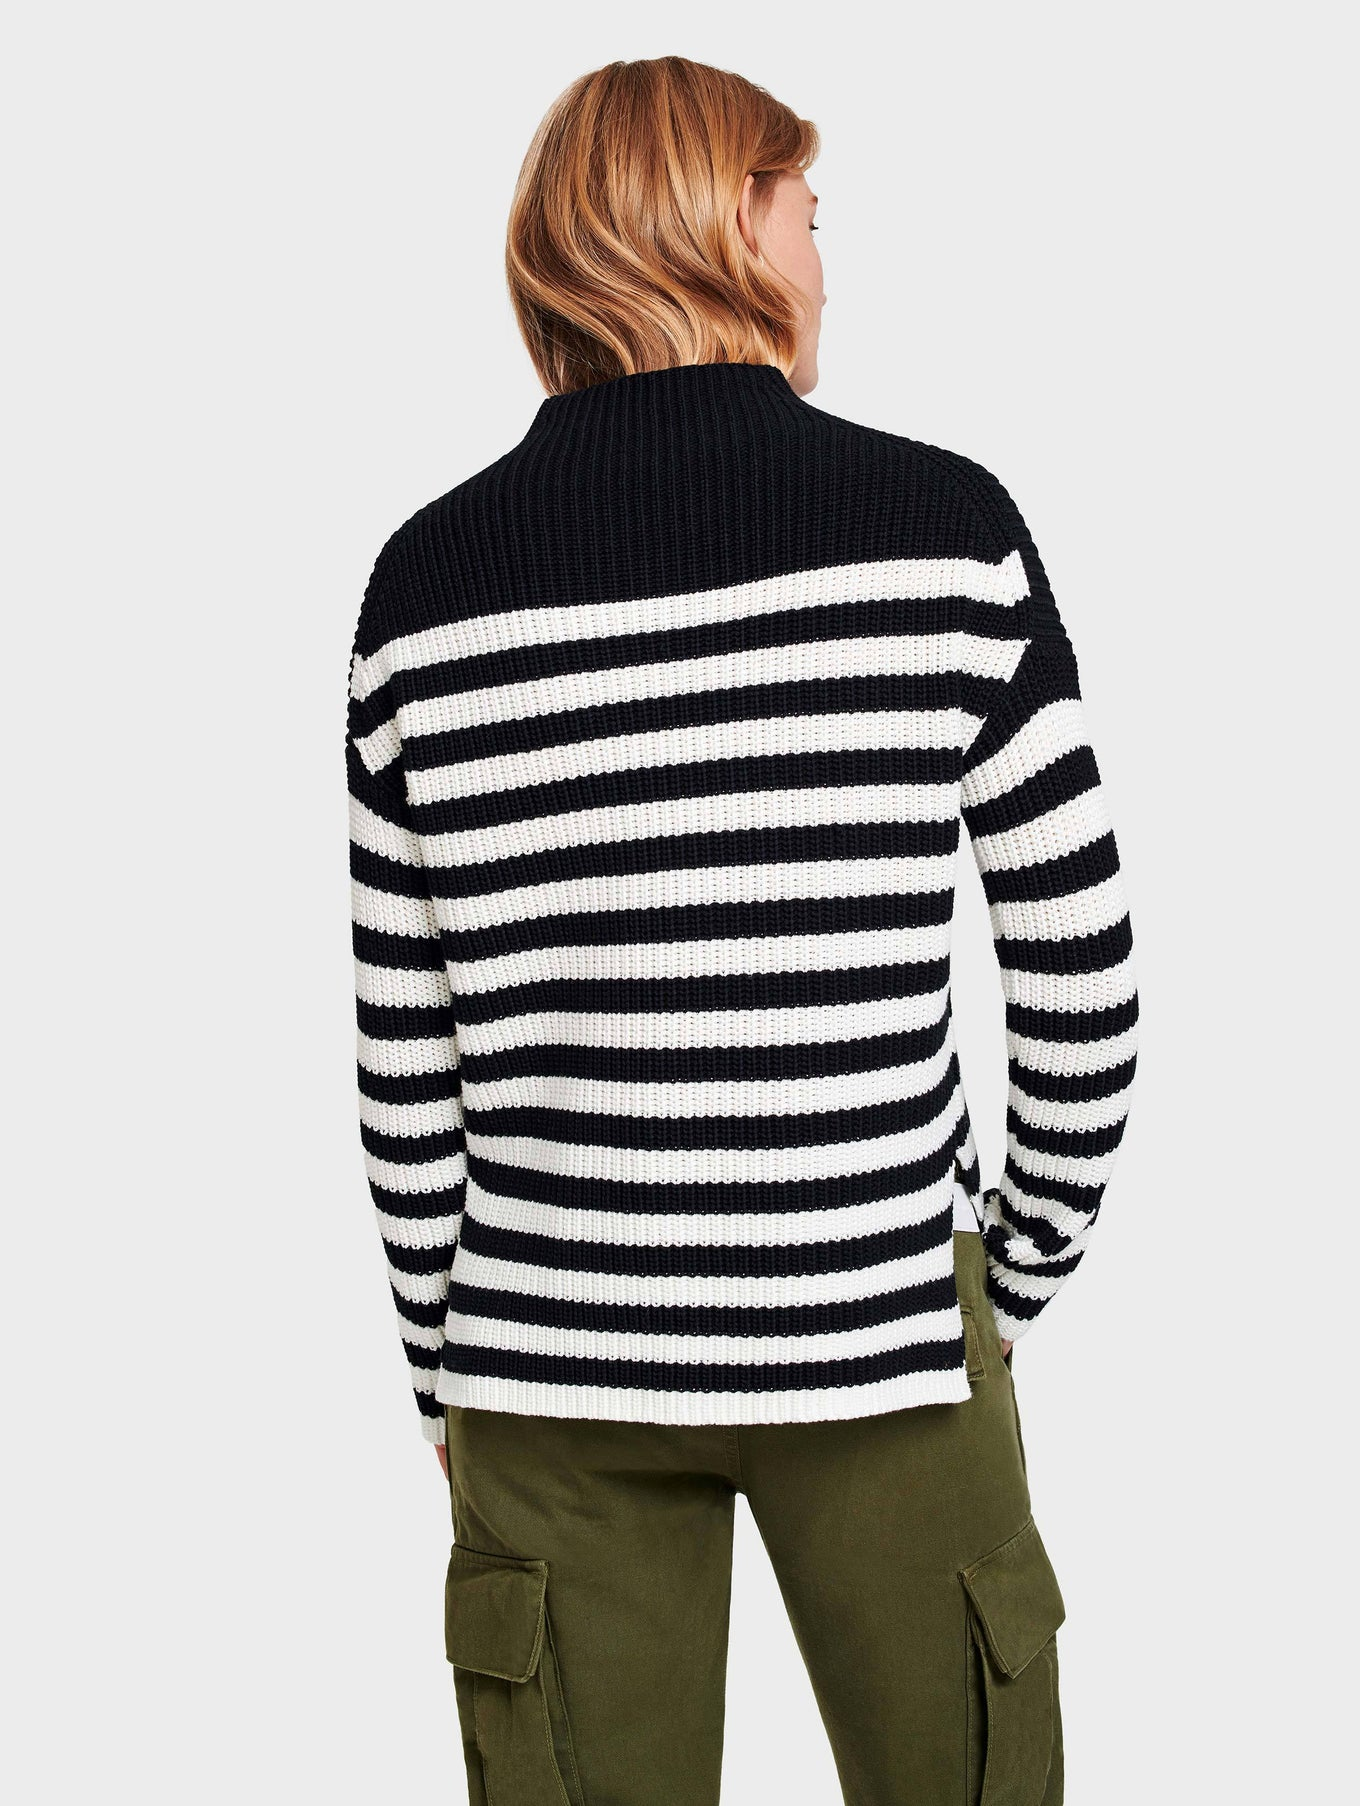 Cotton Rib Mockneck - Black/Ivory Stripe - Image 3